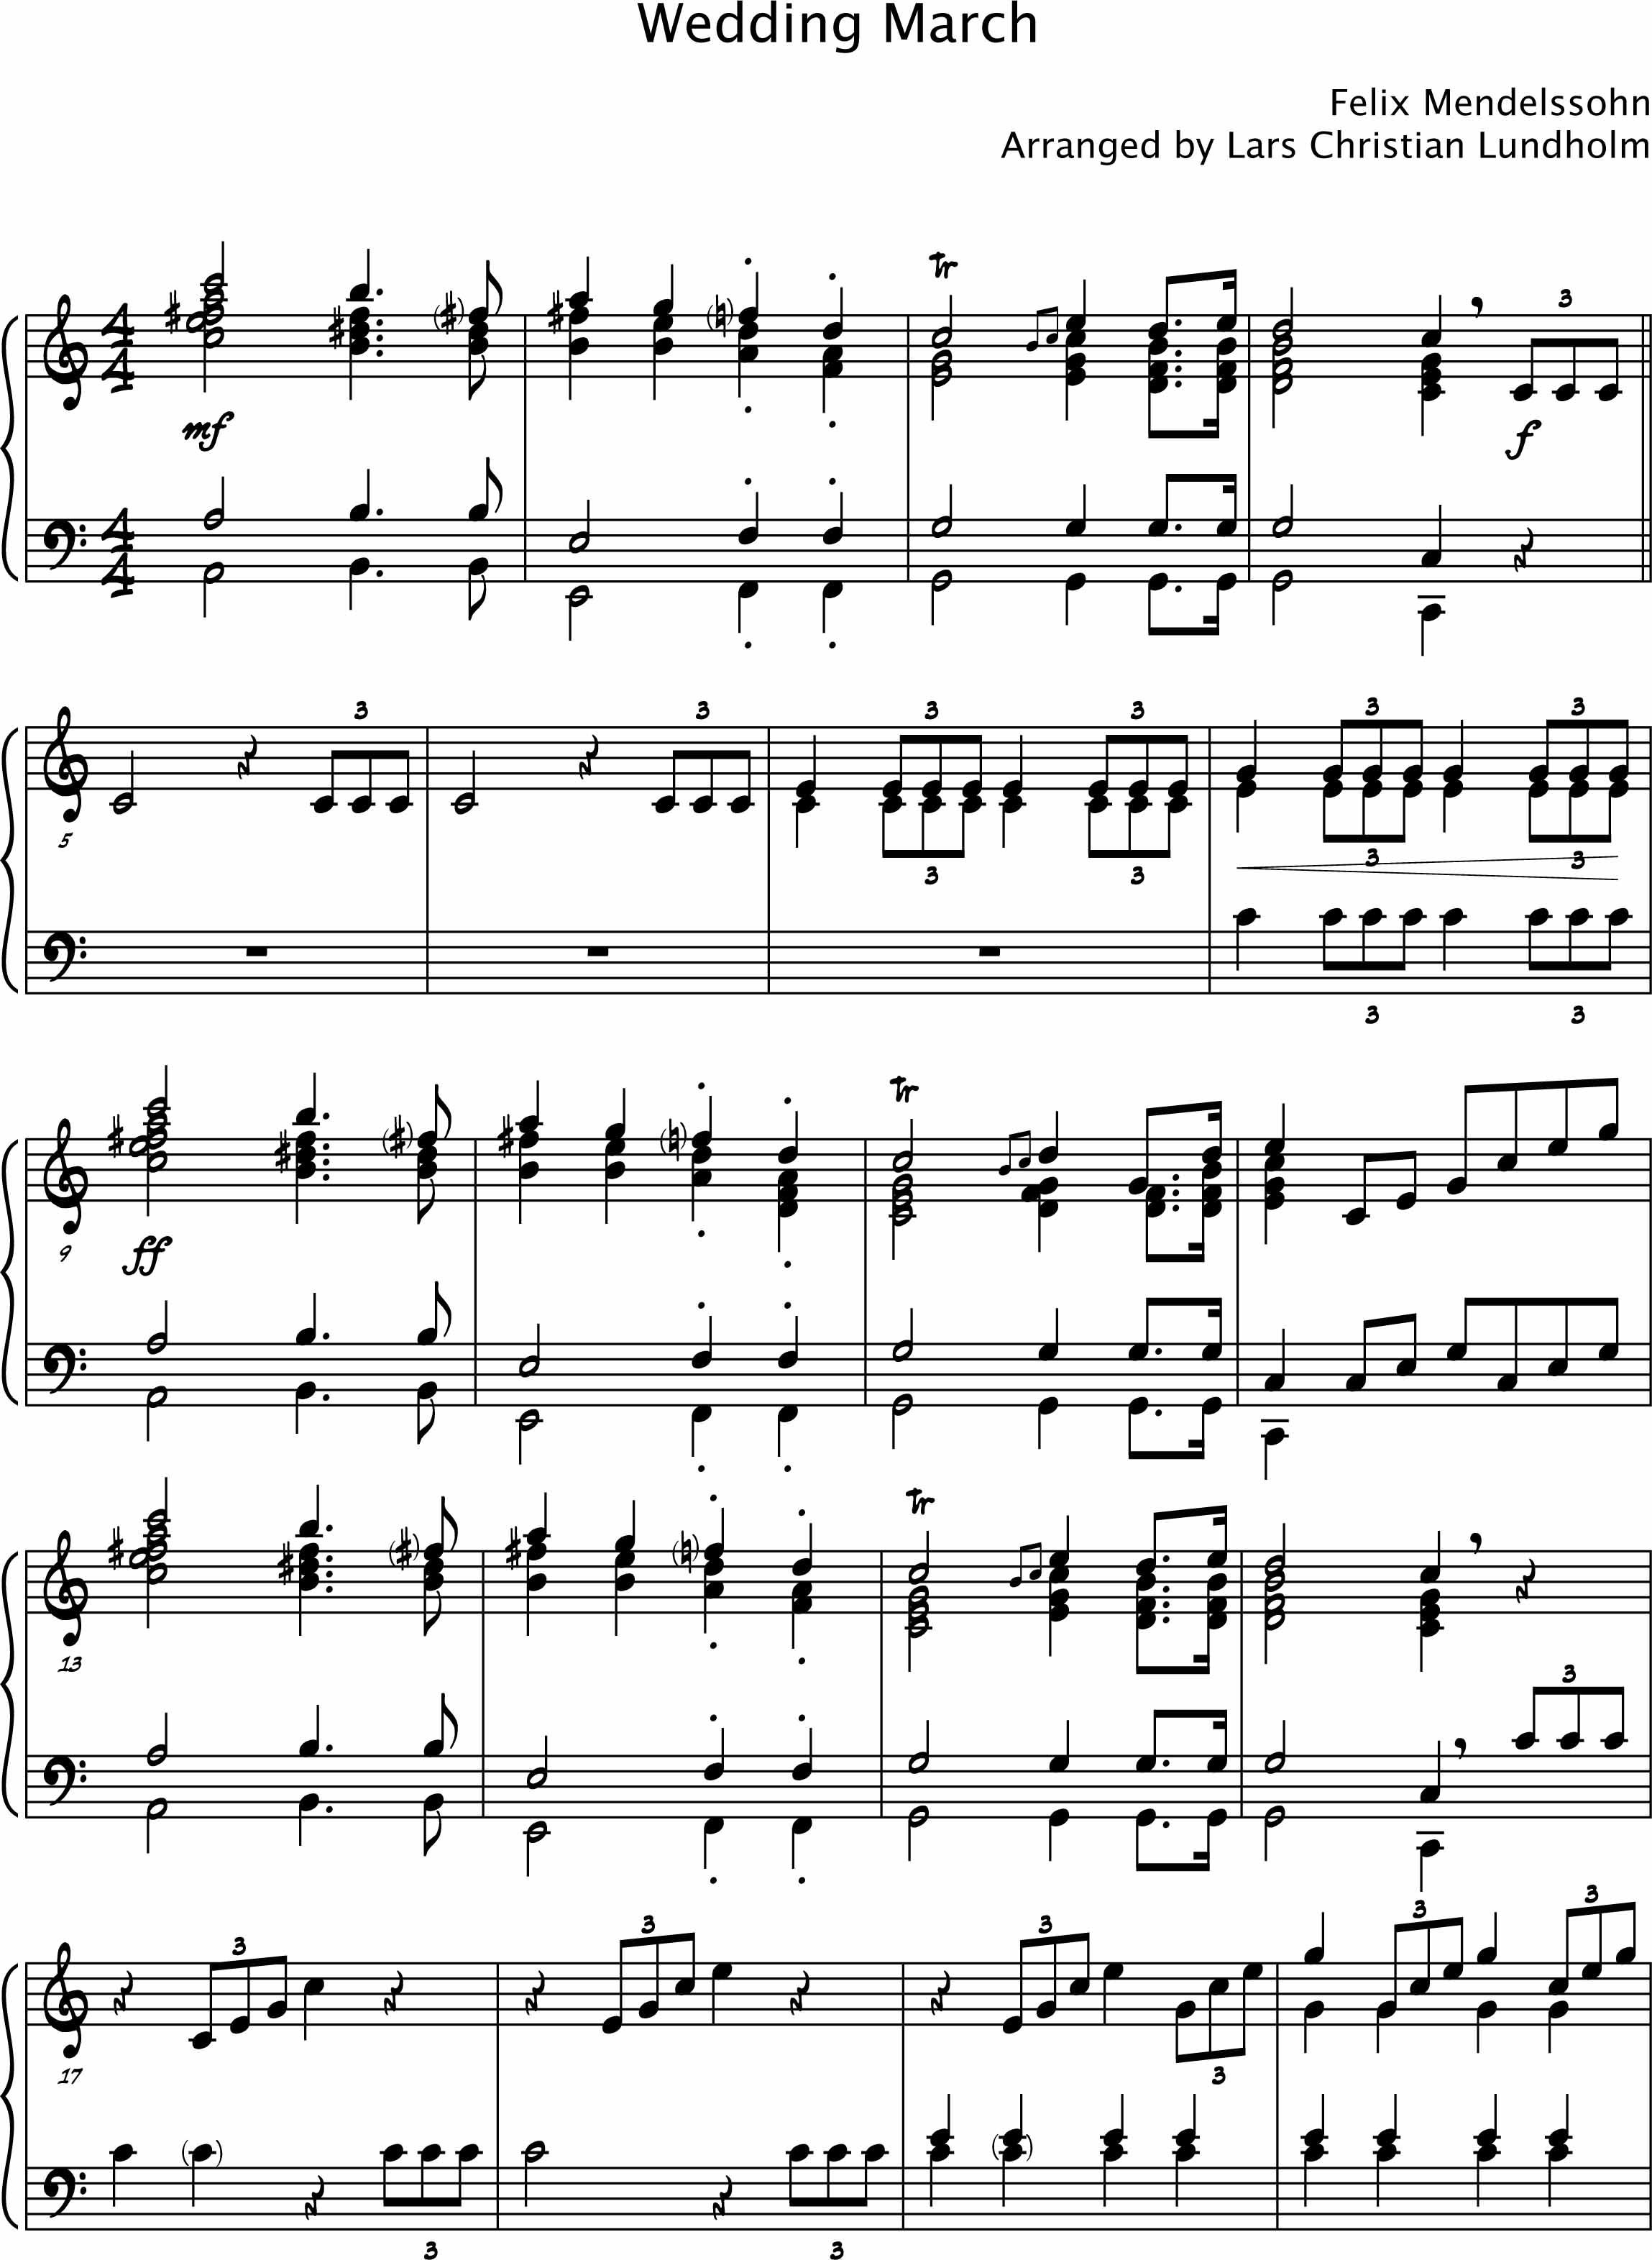 Smashwords Wedding March By Mendelssohn Pure Sheet Music For Piano Arranged By Lars Christian Lundholm A Book By P Piano Sheet Music Sheet Music Music Page